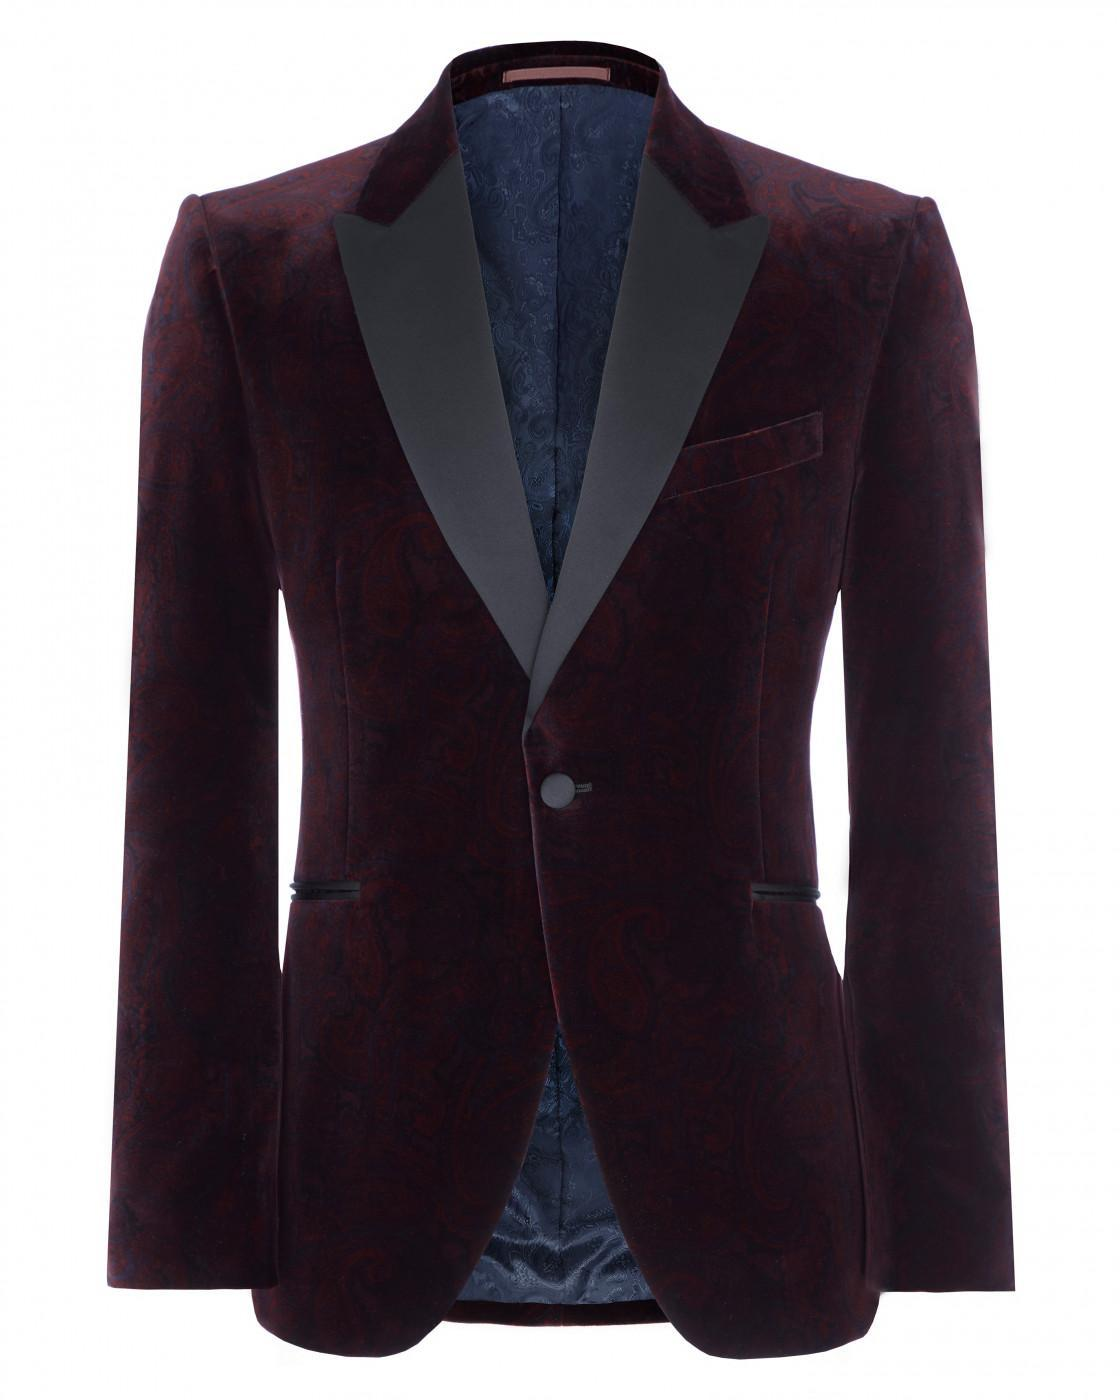 Regular Paisley Velvet Jacket By Jaeger Thread